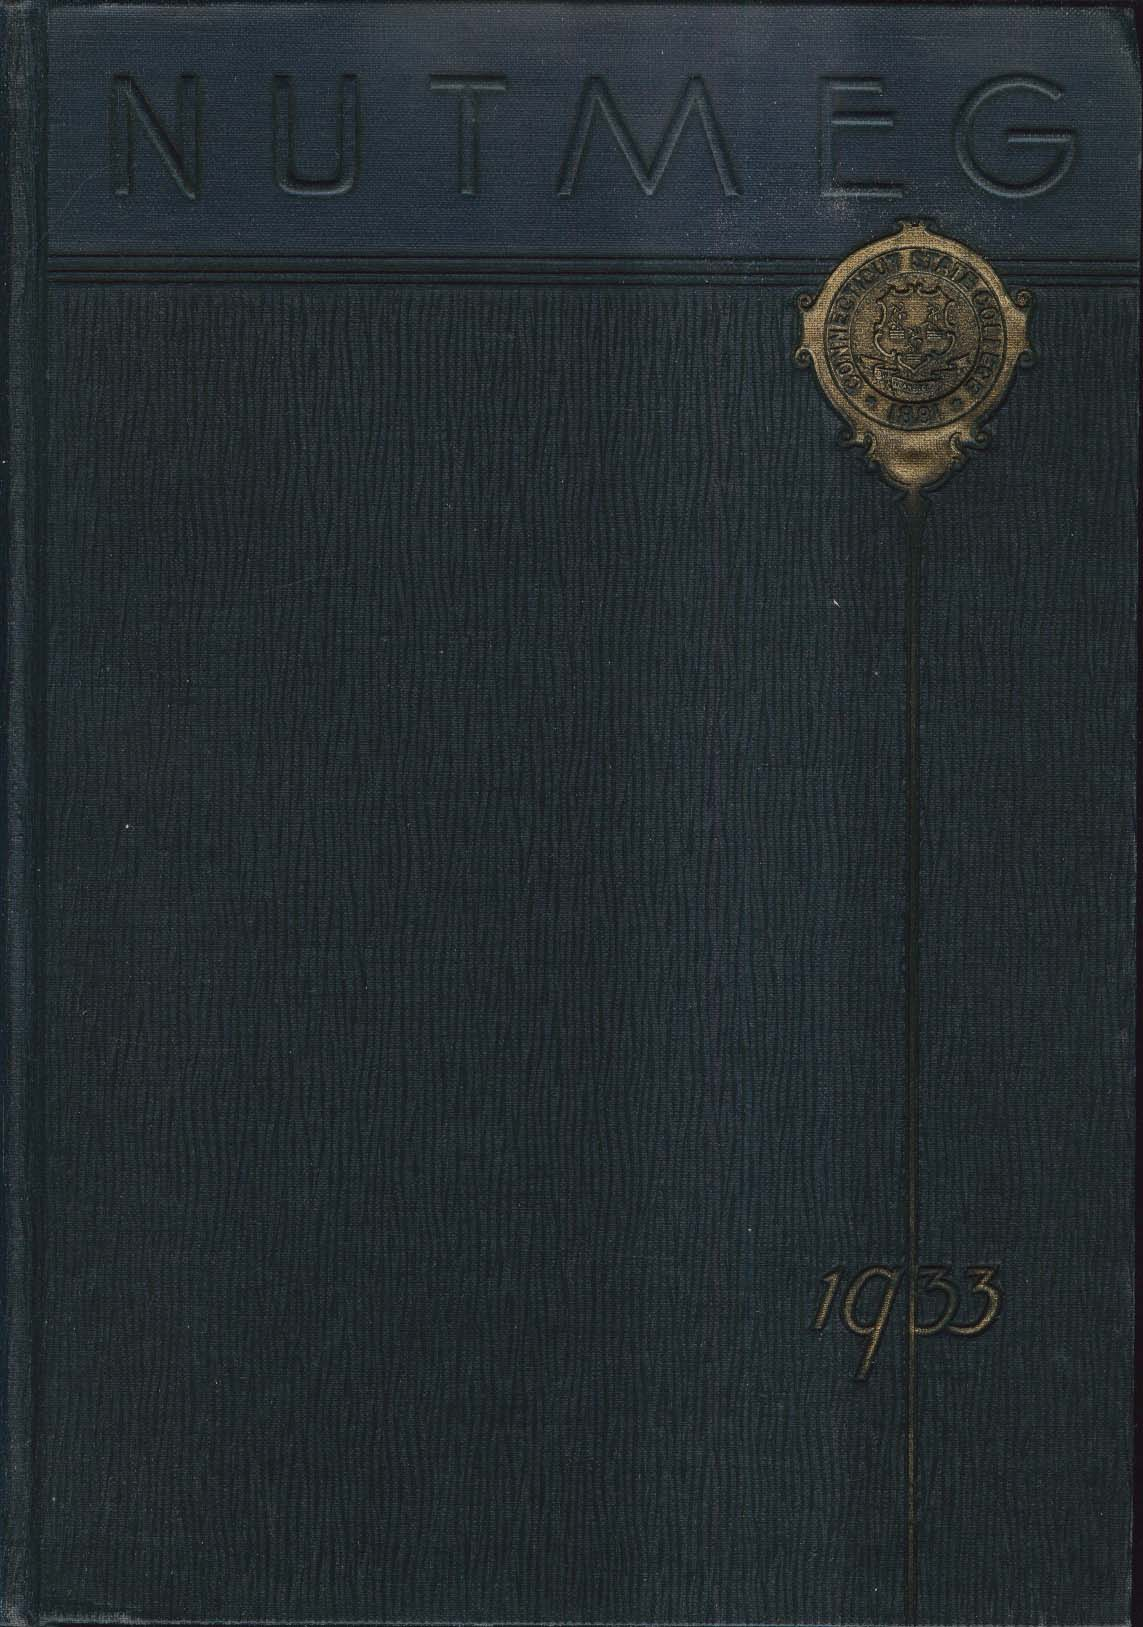 Image for Nutmeg 1933 State College of Connecticut Storrs Connecticut Yearbook